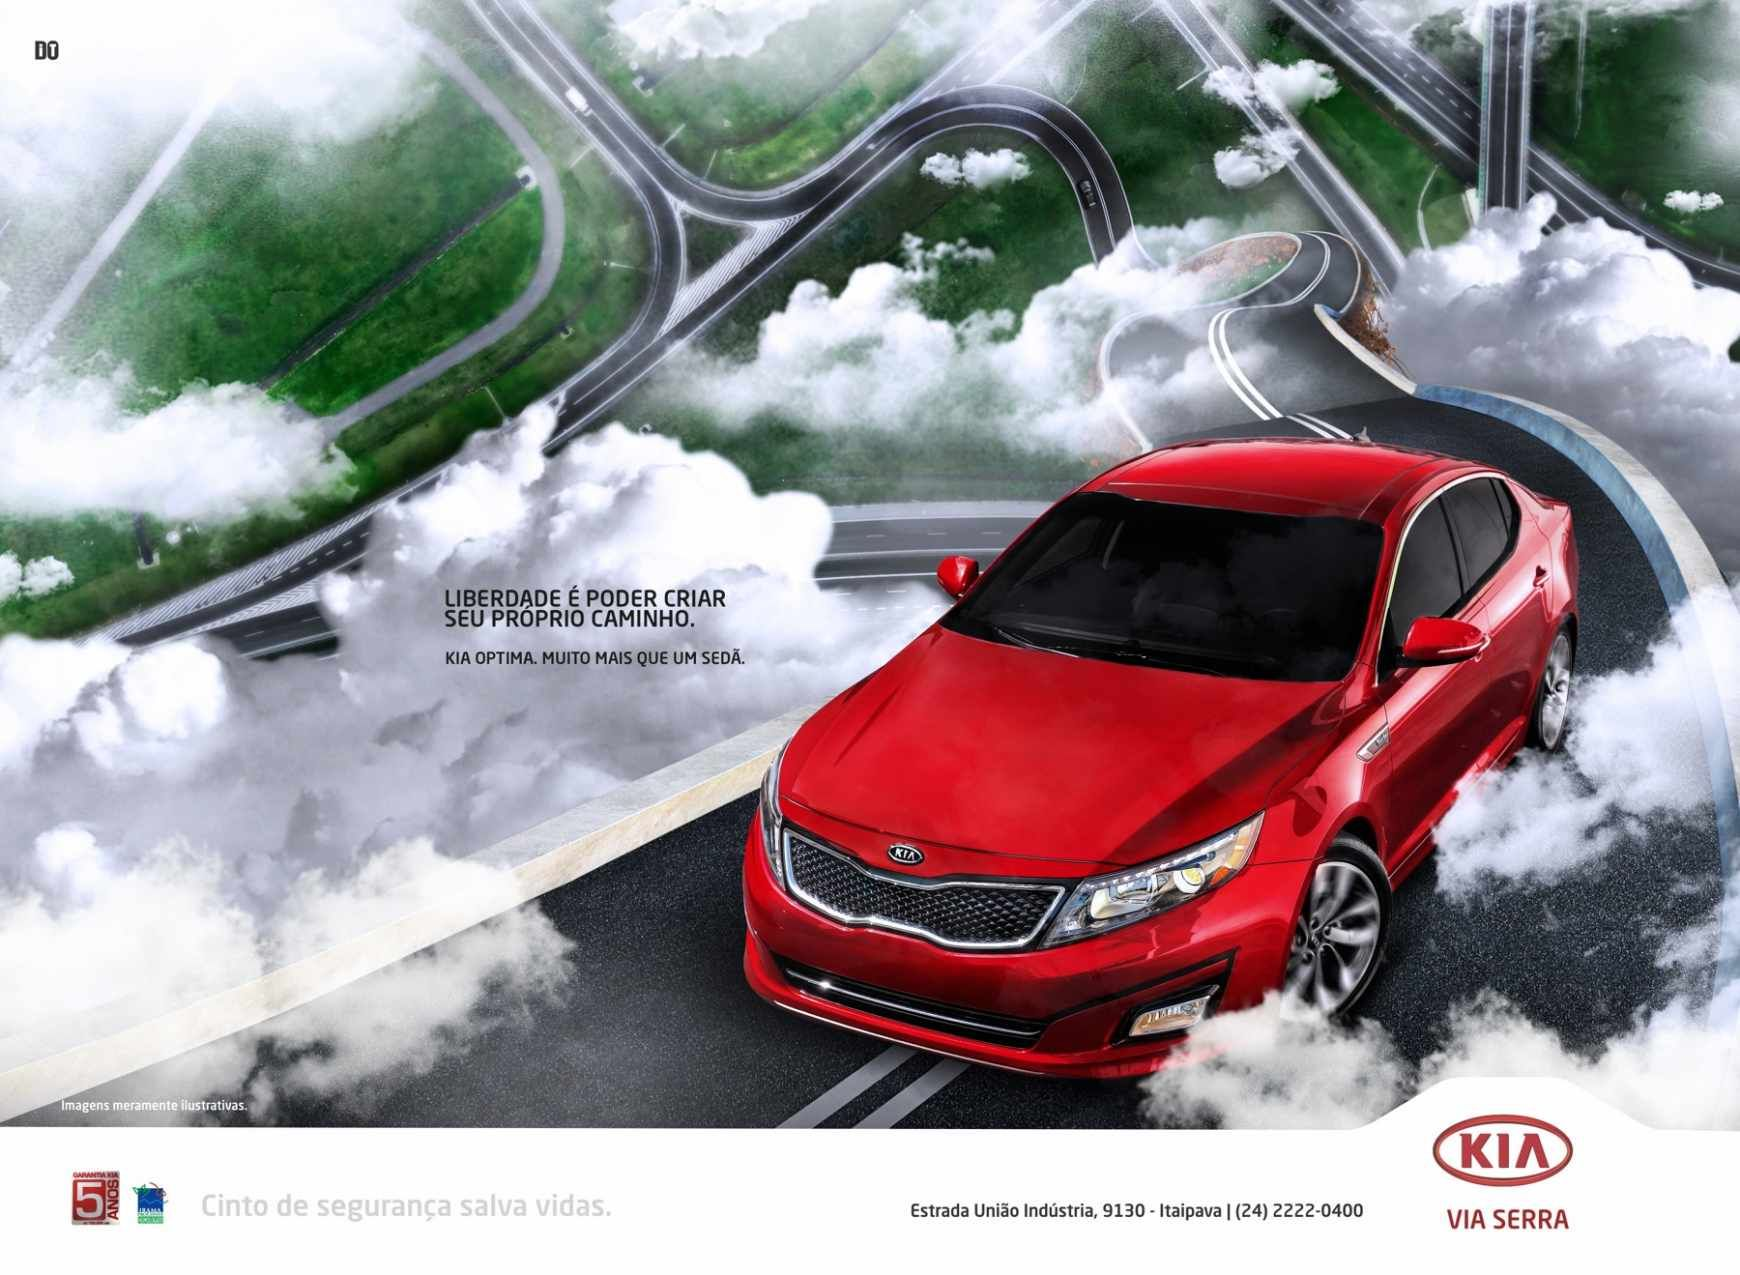 kia freedom 2 ads of the world kia car advertising brand advertising kia freedom 2 ads of the world